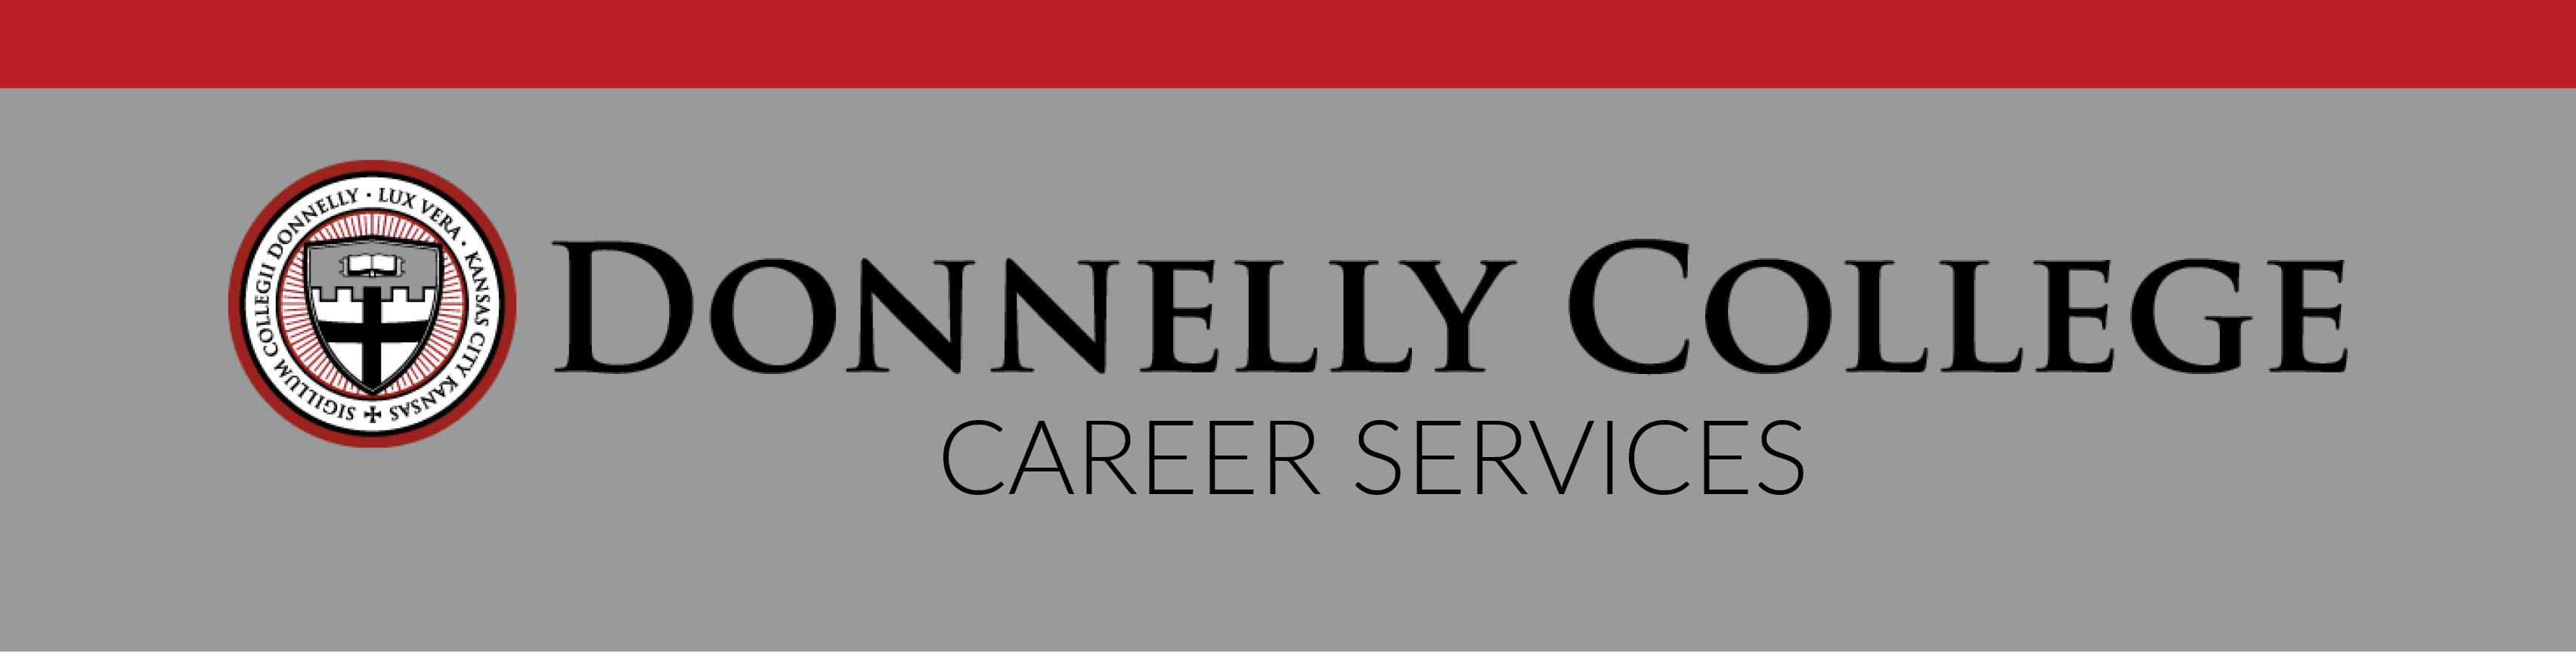 Donnelly College Career Services logo